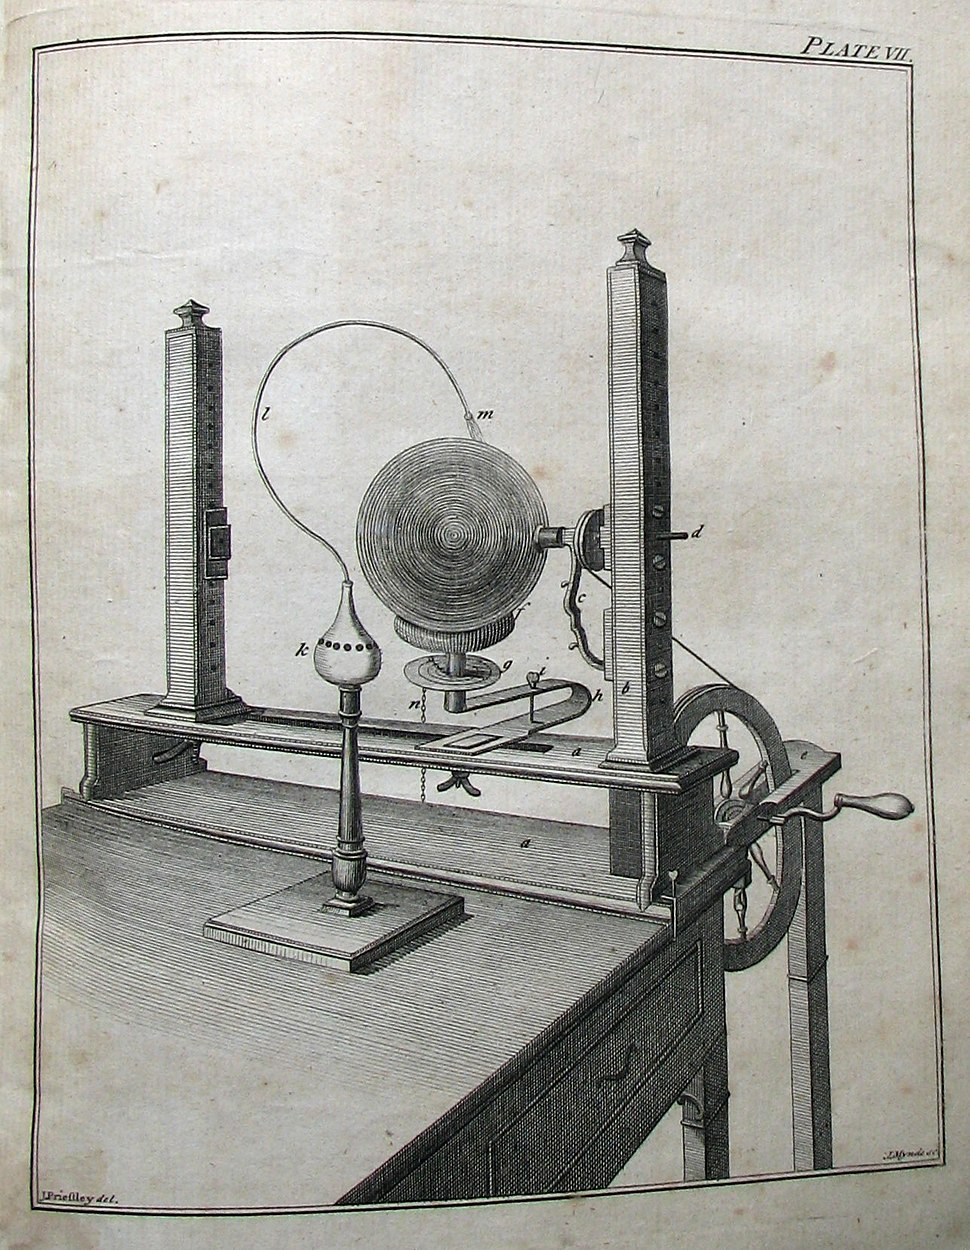 Familiar Introduction to Electricity by Joseph Priestly, plate 7